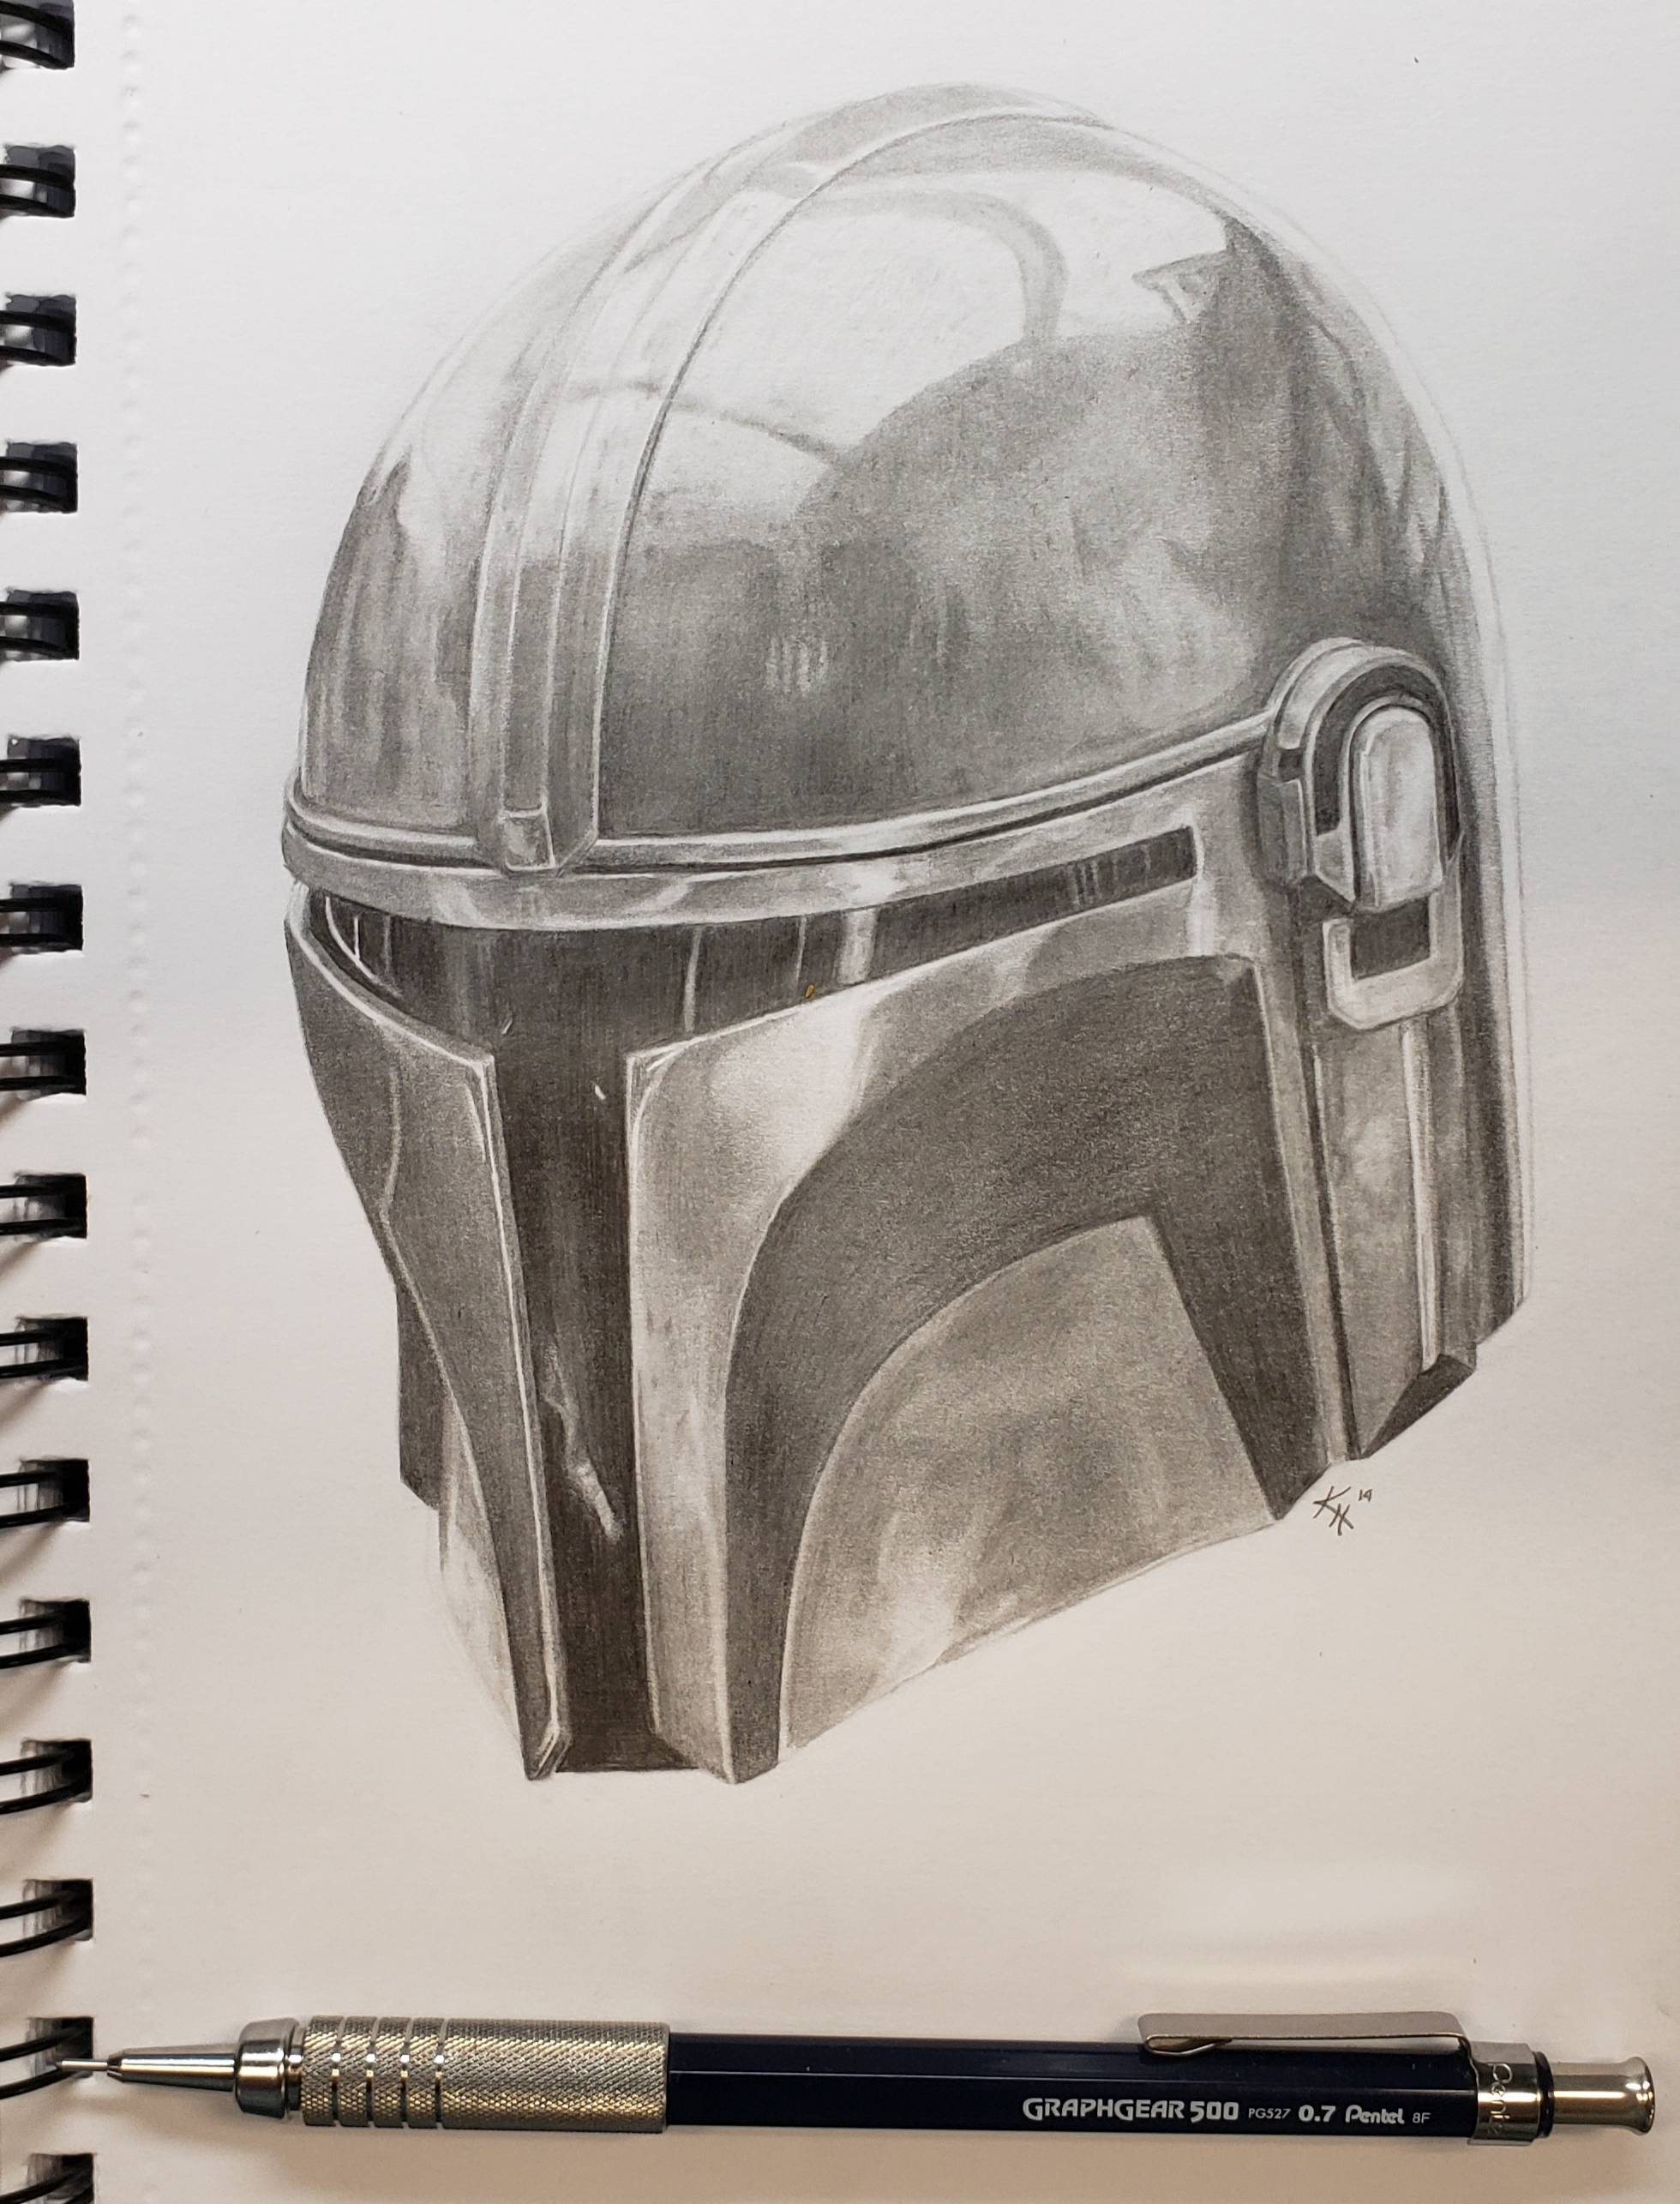 [OC] I drew the Helm of the Mandalorian!